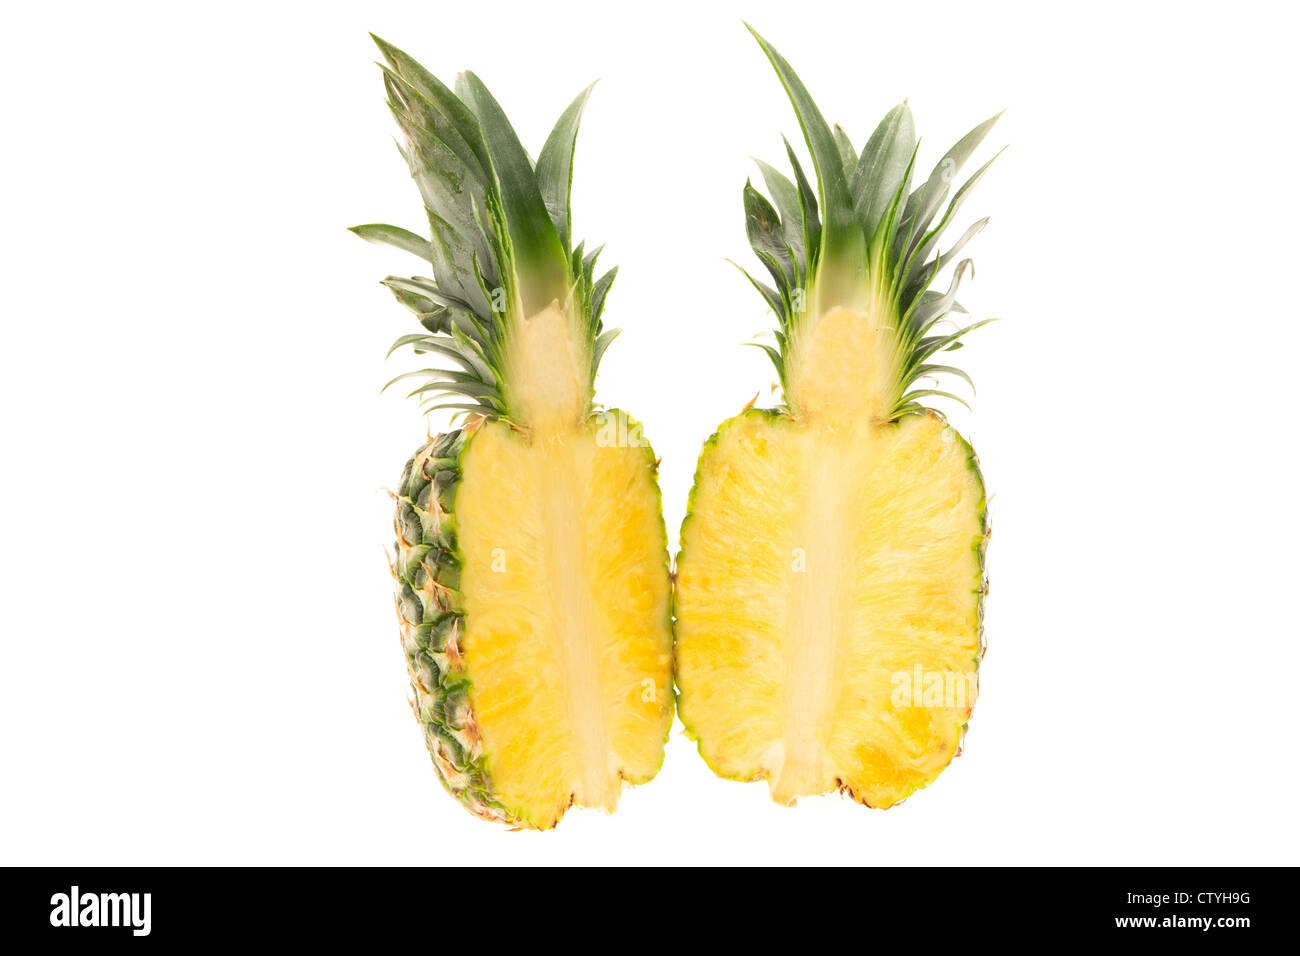 Fresh pineapple cut in half - studio shot with a white background - Stock Image